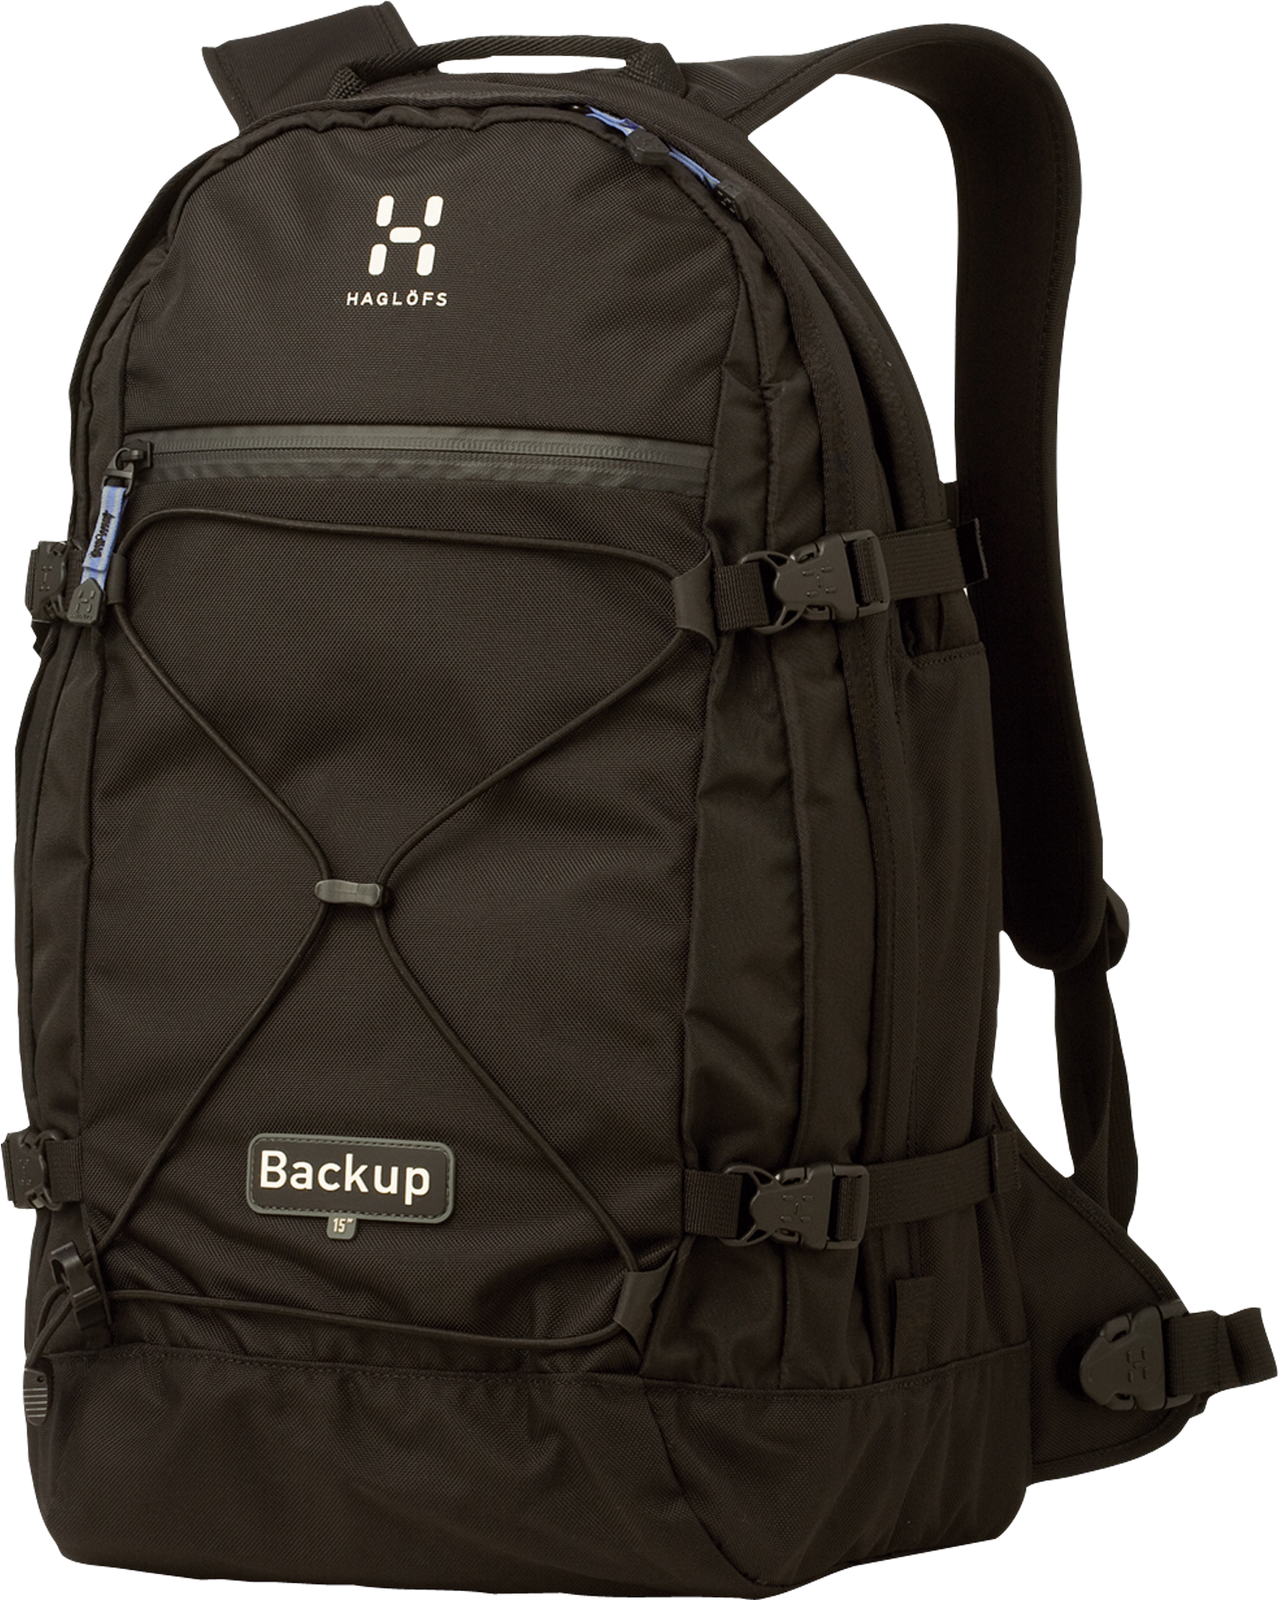 Backpack PNG Transparent Backpack.PNG Images..